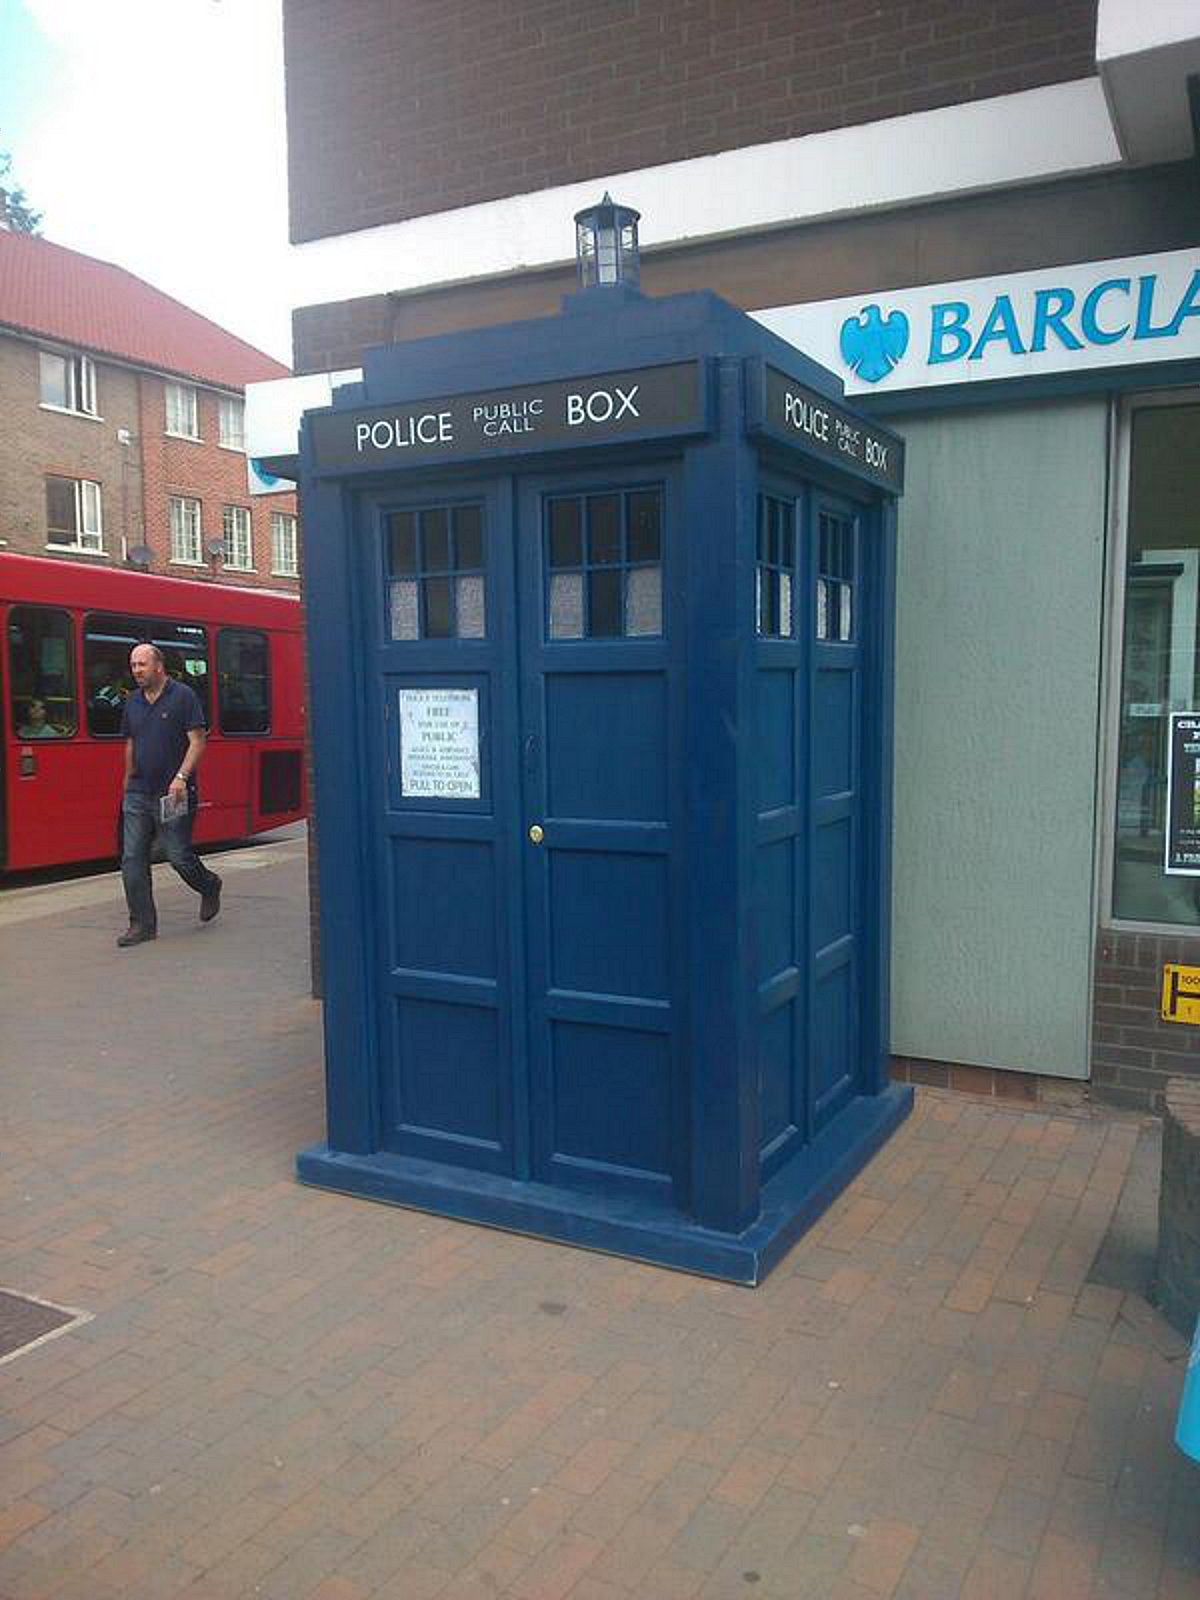 The TARDIS, short for Time and Relative Dimension in Space, is in Orpington. Photo: @VickyaLove